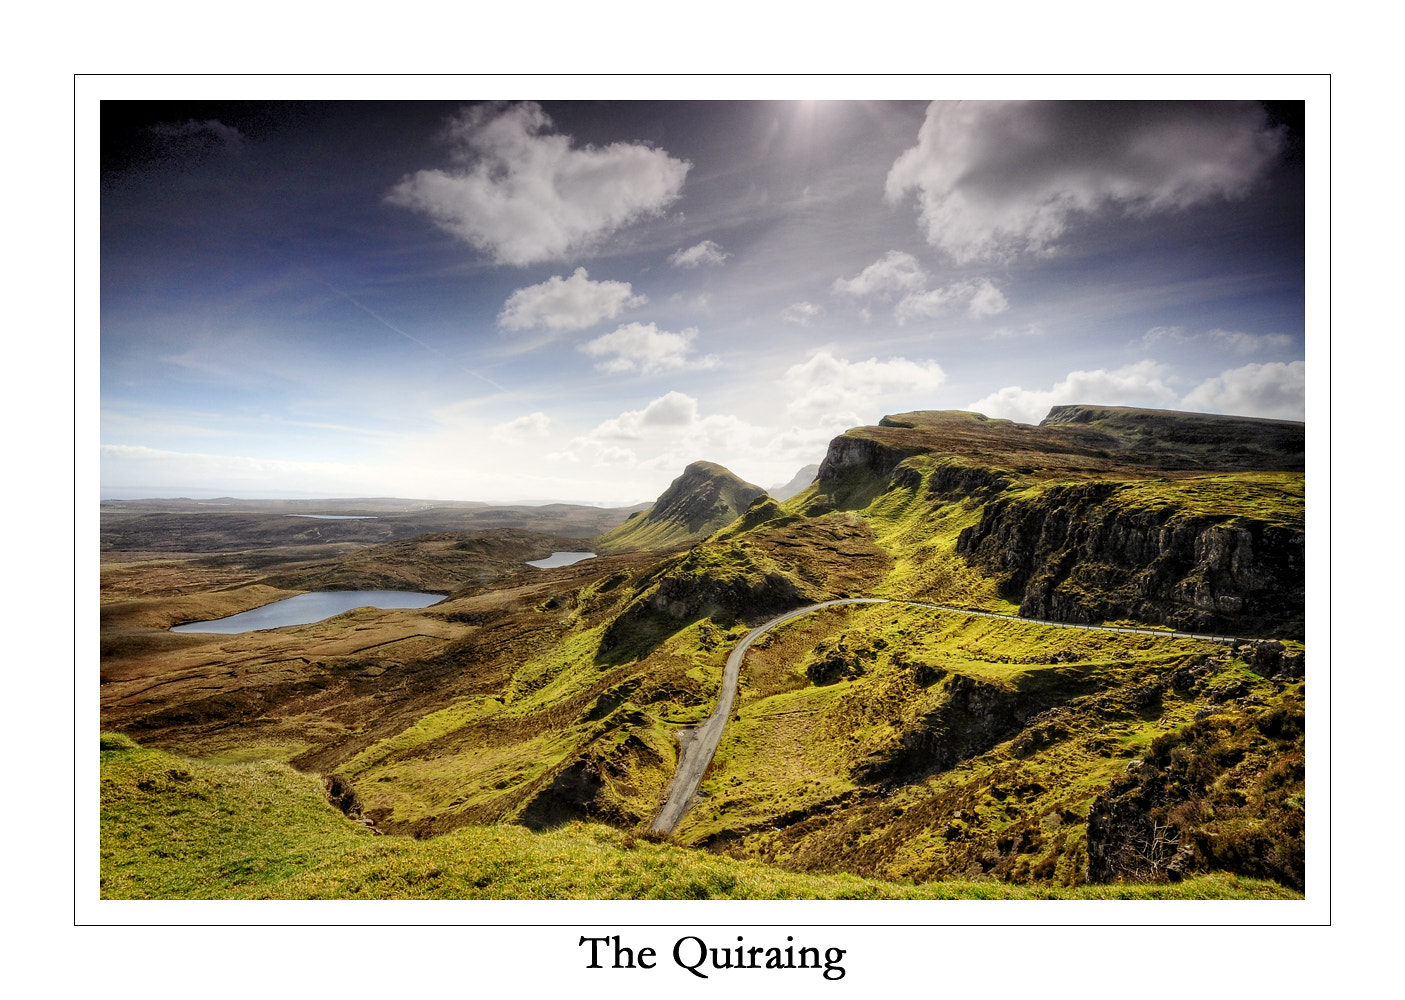 Photograph The Quiraing by Ian Newton on 500px